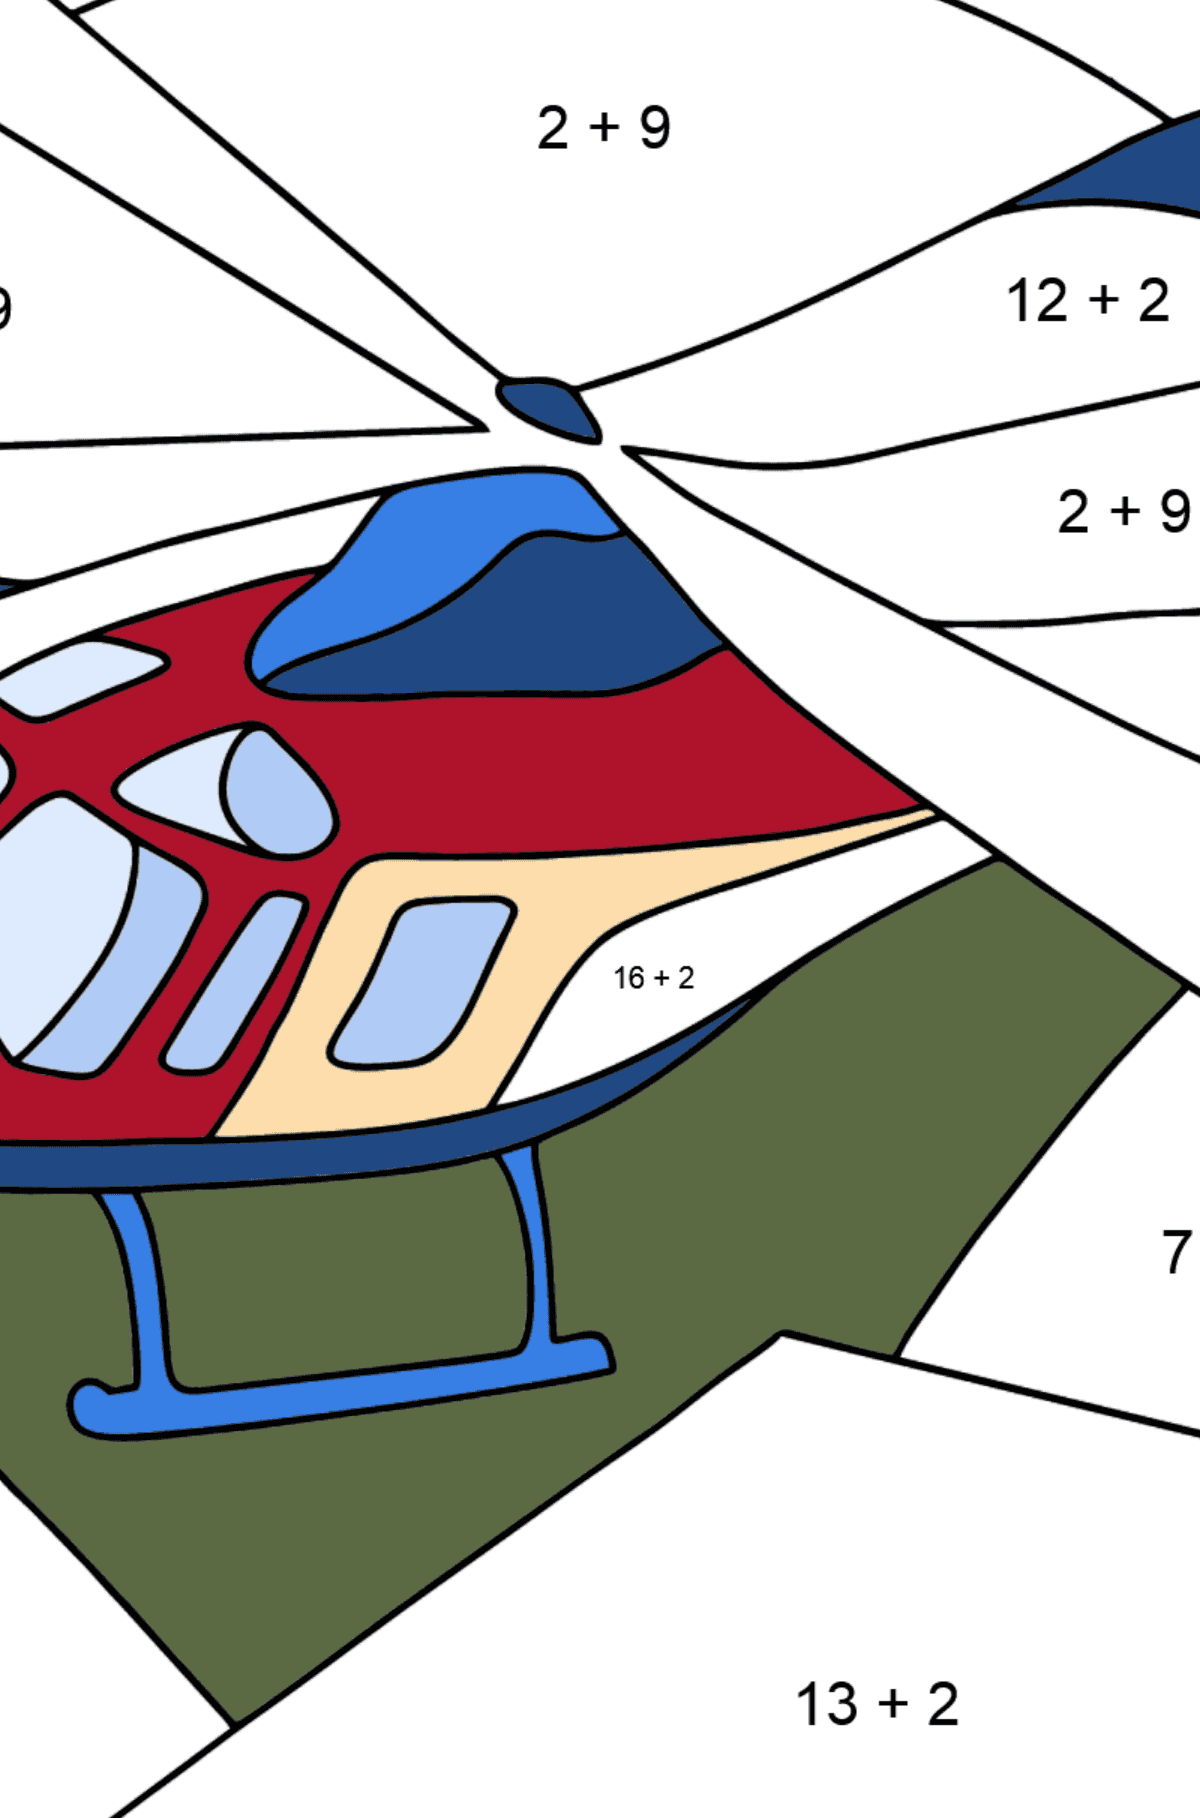 Coloring Page - A Sport Helicopter - Math Coloring - Addition for Kids